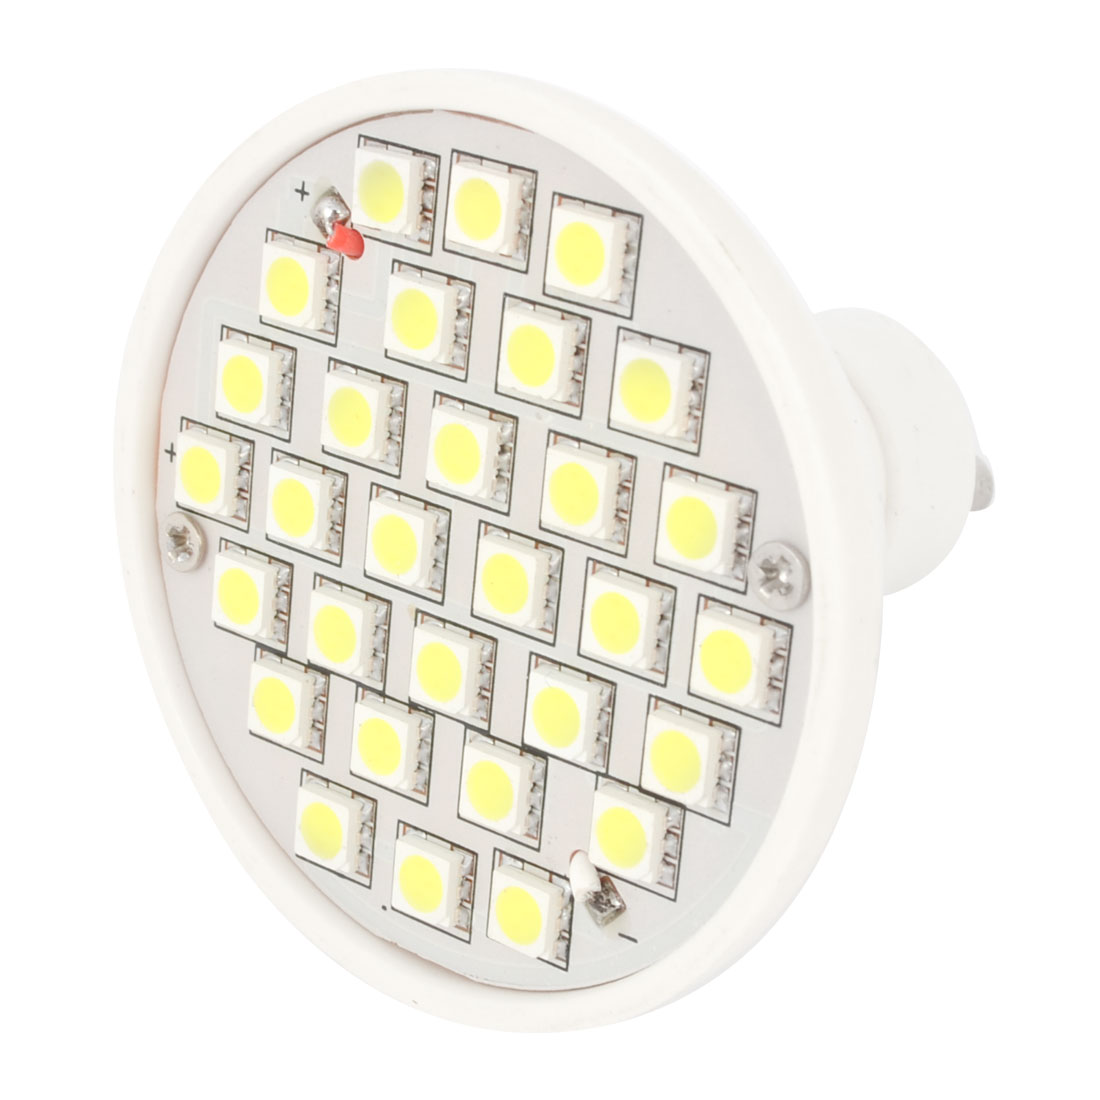 AC 220V White 30 3528 SMD LED Spot Light Energy Saving Bulb GU10 3000K 3W